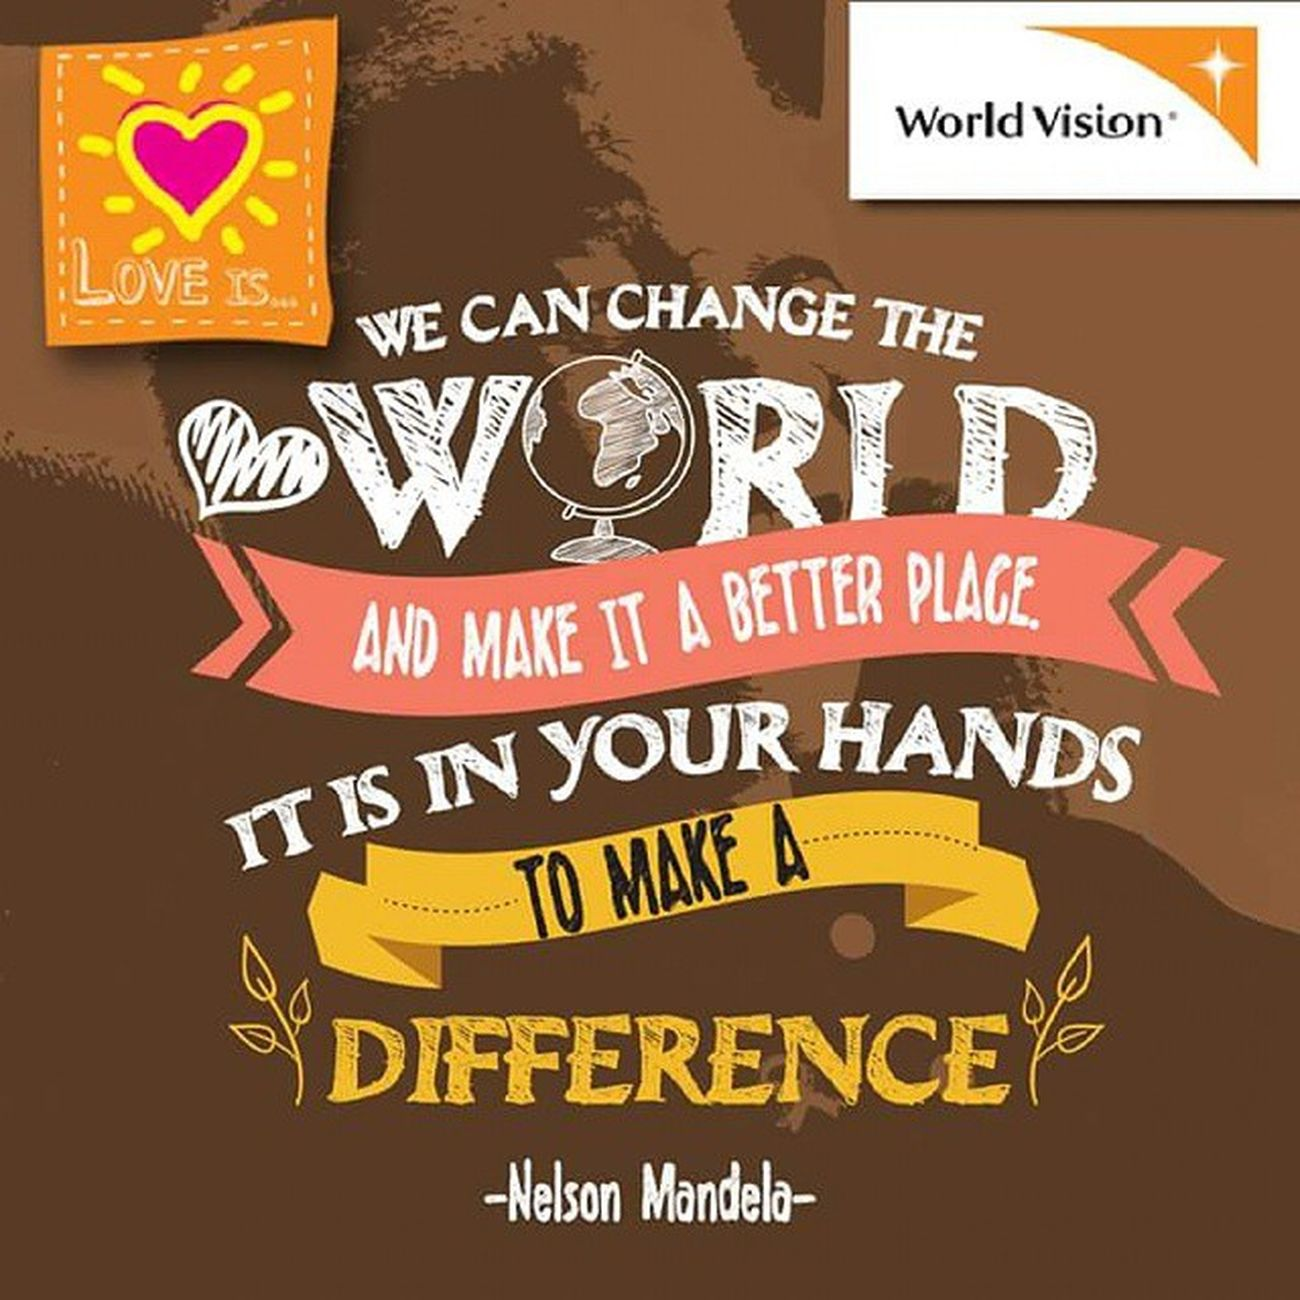 We can change the world and make it a better place... It is in your hands to make a DIFFERENCE! Join us and help more people!😊😊 Changbeginswithyou 改變從你出發 Hungerforchange 營造希望童夢成真 worldvisionmalaysia worldvision volunteering asian joyful makeitdifference changetheworld makeitperfect nomorehunger